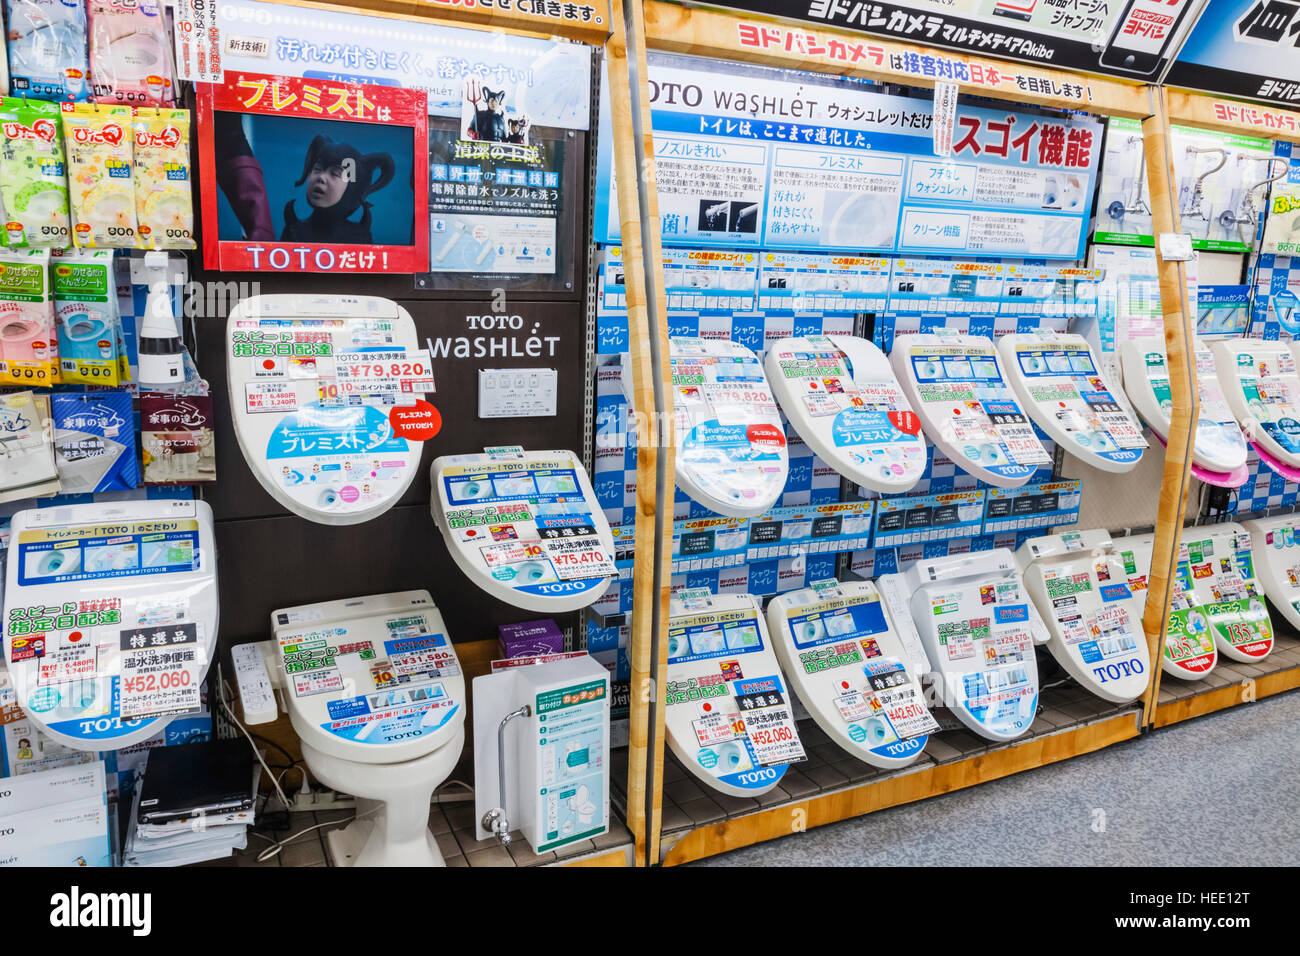 Japanese Toilets Stock Photos & Japanese Toilets Stock Images - Alamy